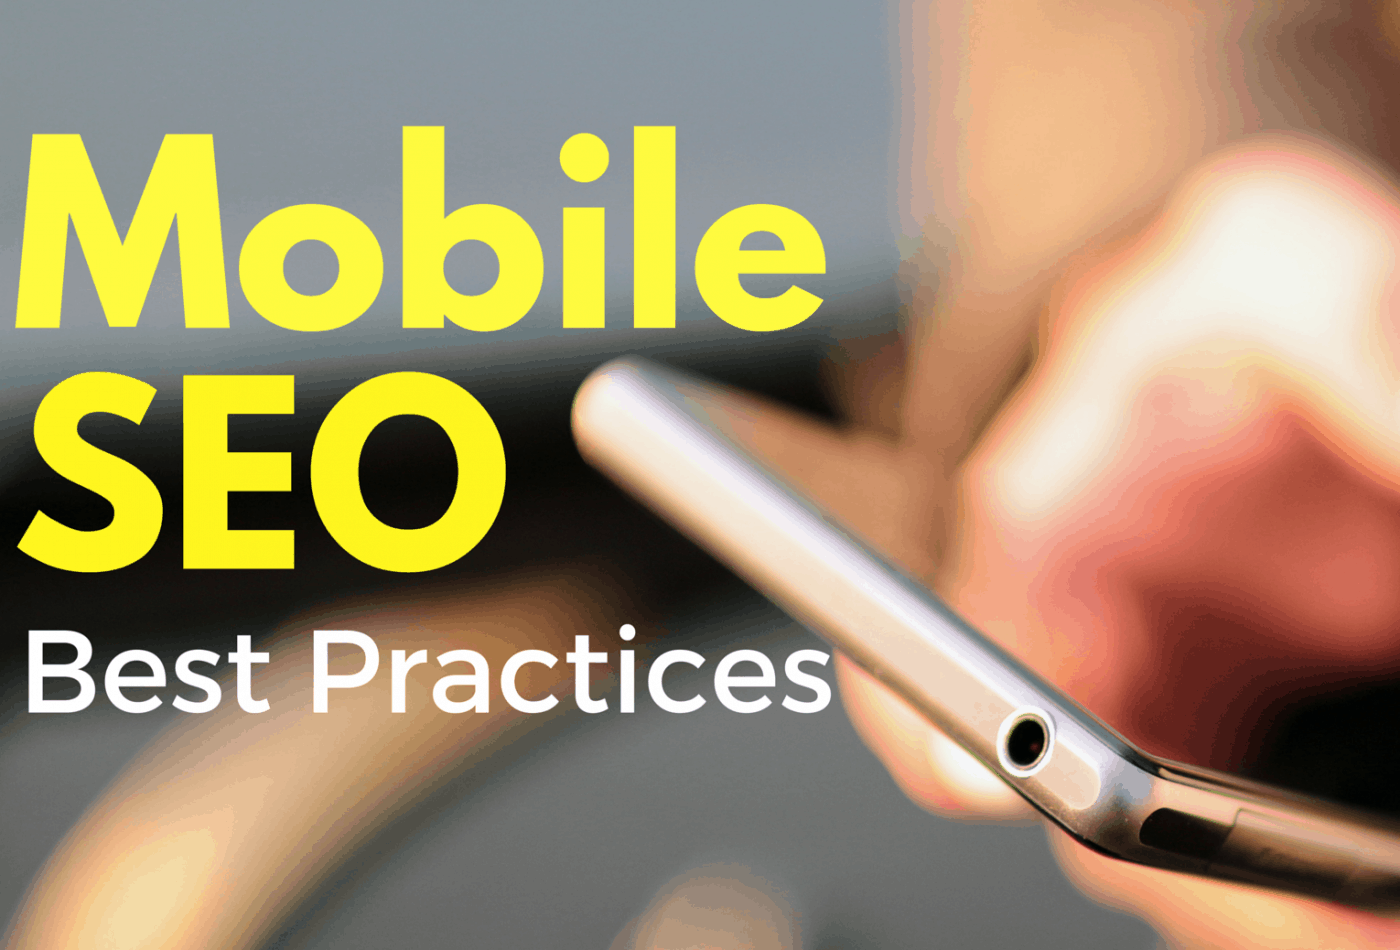 Mobile SEO Best Practices Tips to optimize your mobile website DigitalDefynd